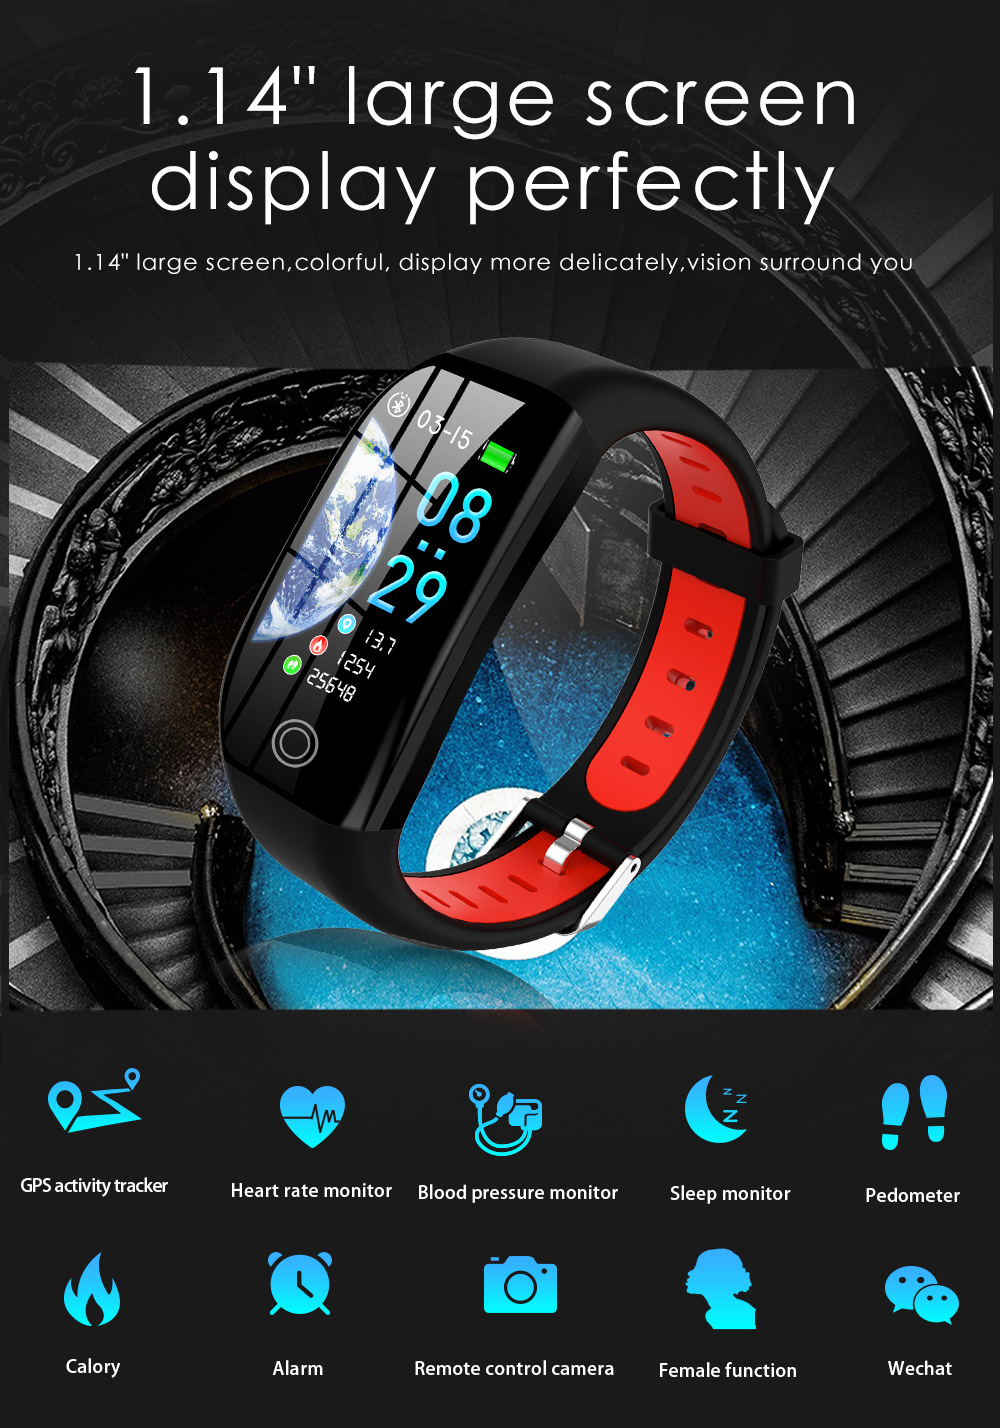 Smart Fitness Tracker with Built-in GPS, GPS Smartwatch Bracelet, gps watch, gps connection, smartwatch, cool design, nice smartwatch design, malaysia smartwatch gps